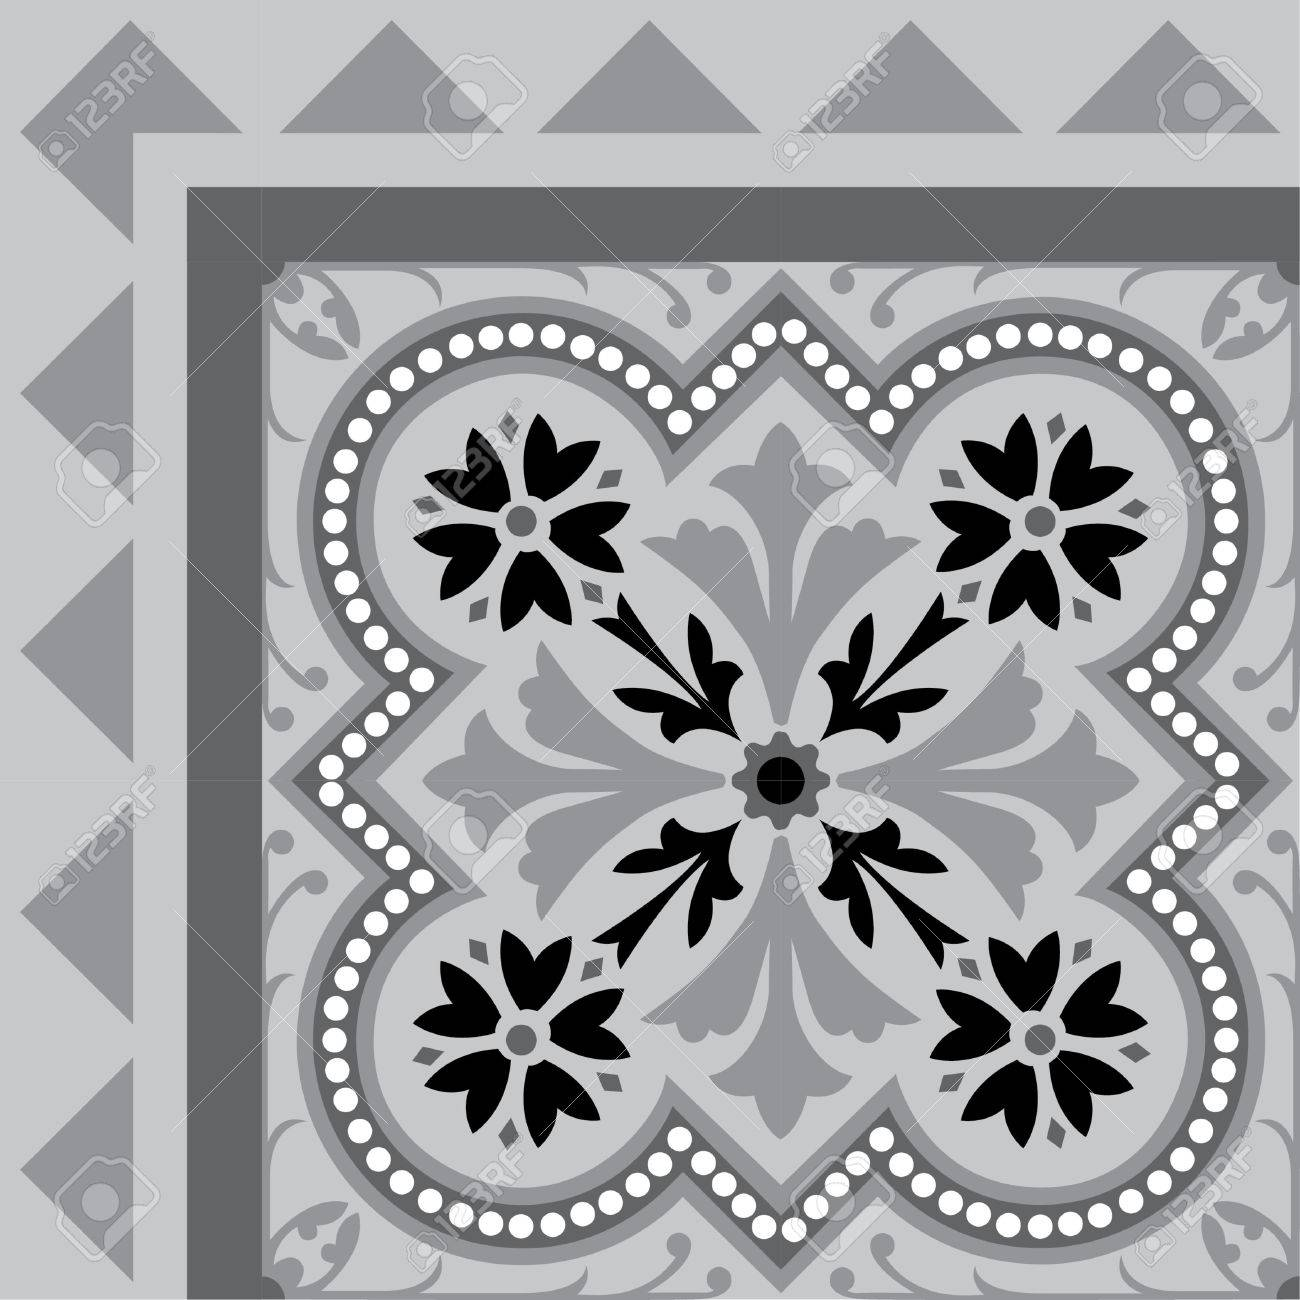 Tiled flowers background with frame, in editable vector file, Grayscale Stock Vector - 24147659